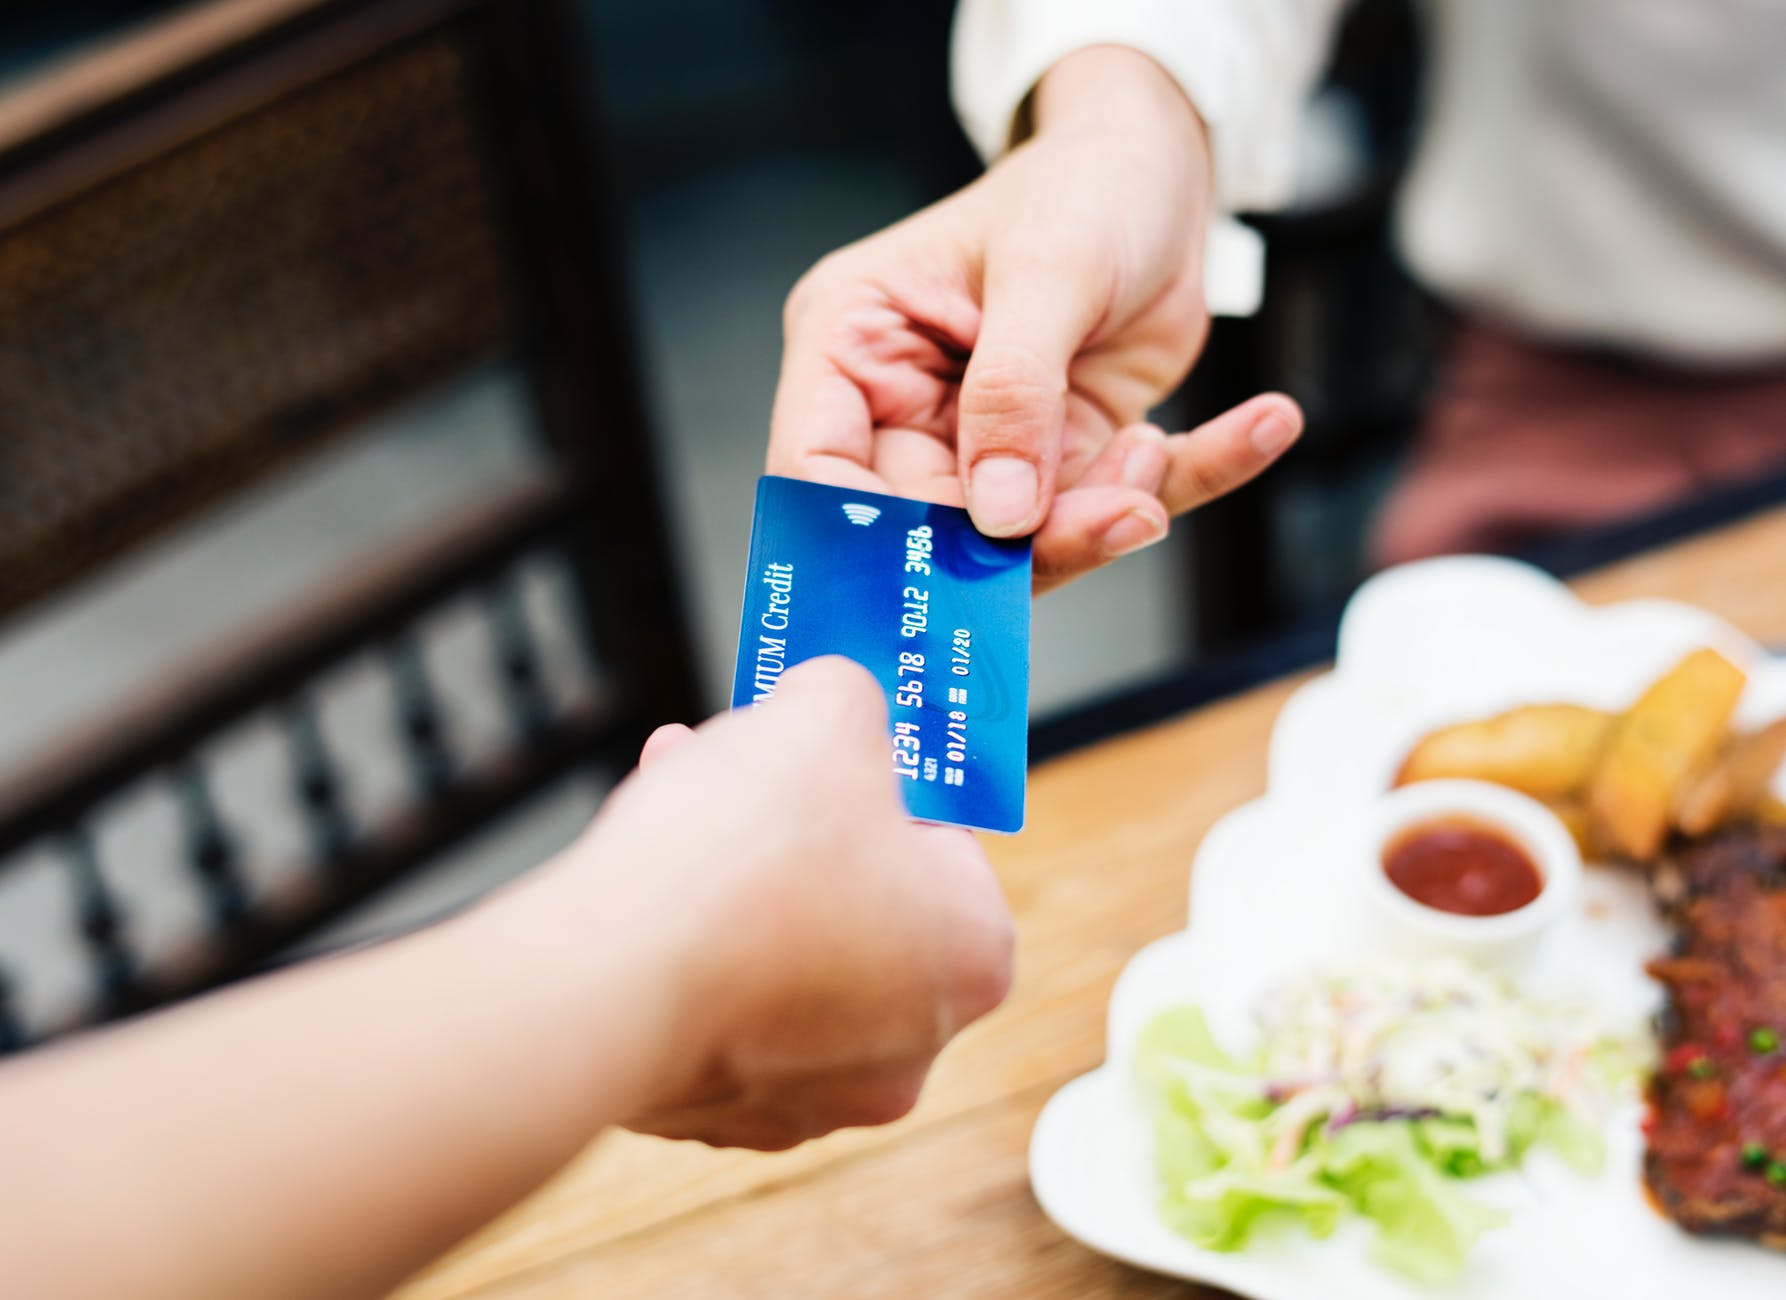 Customer Handing Card to Business Owner Image - Convenience of Card Payments